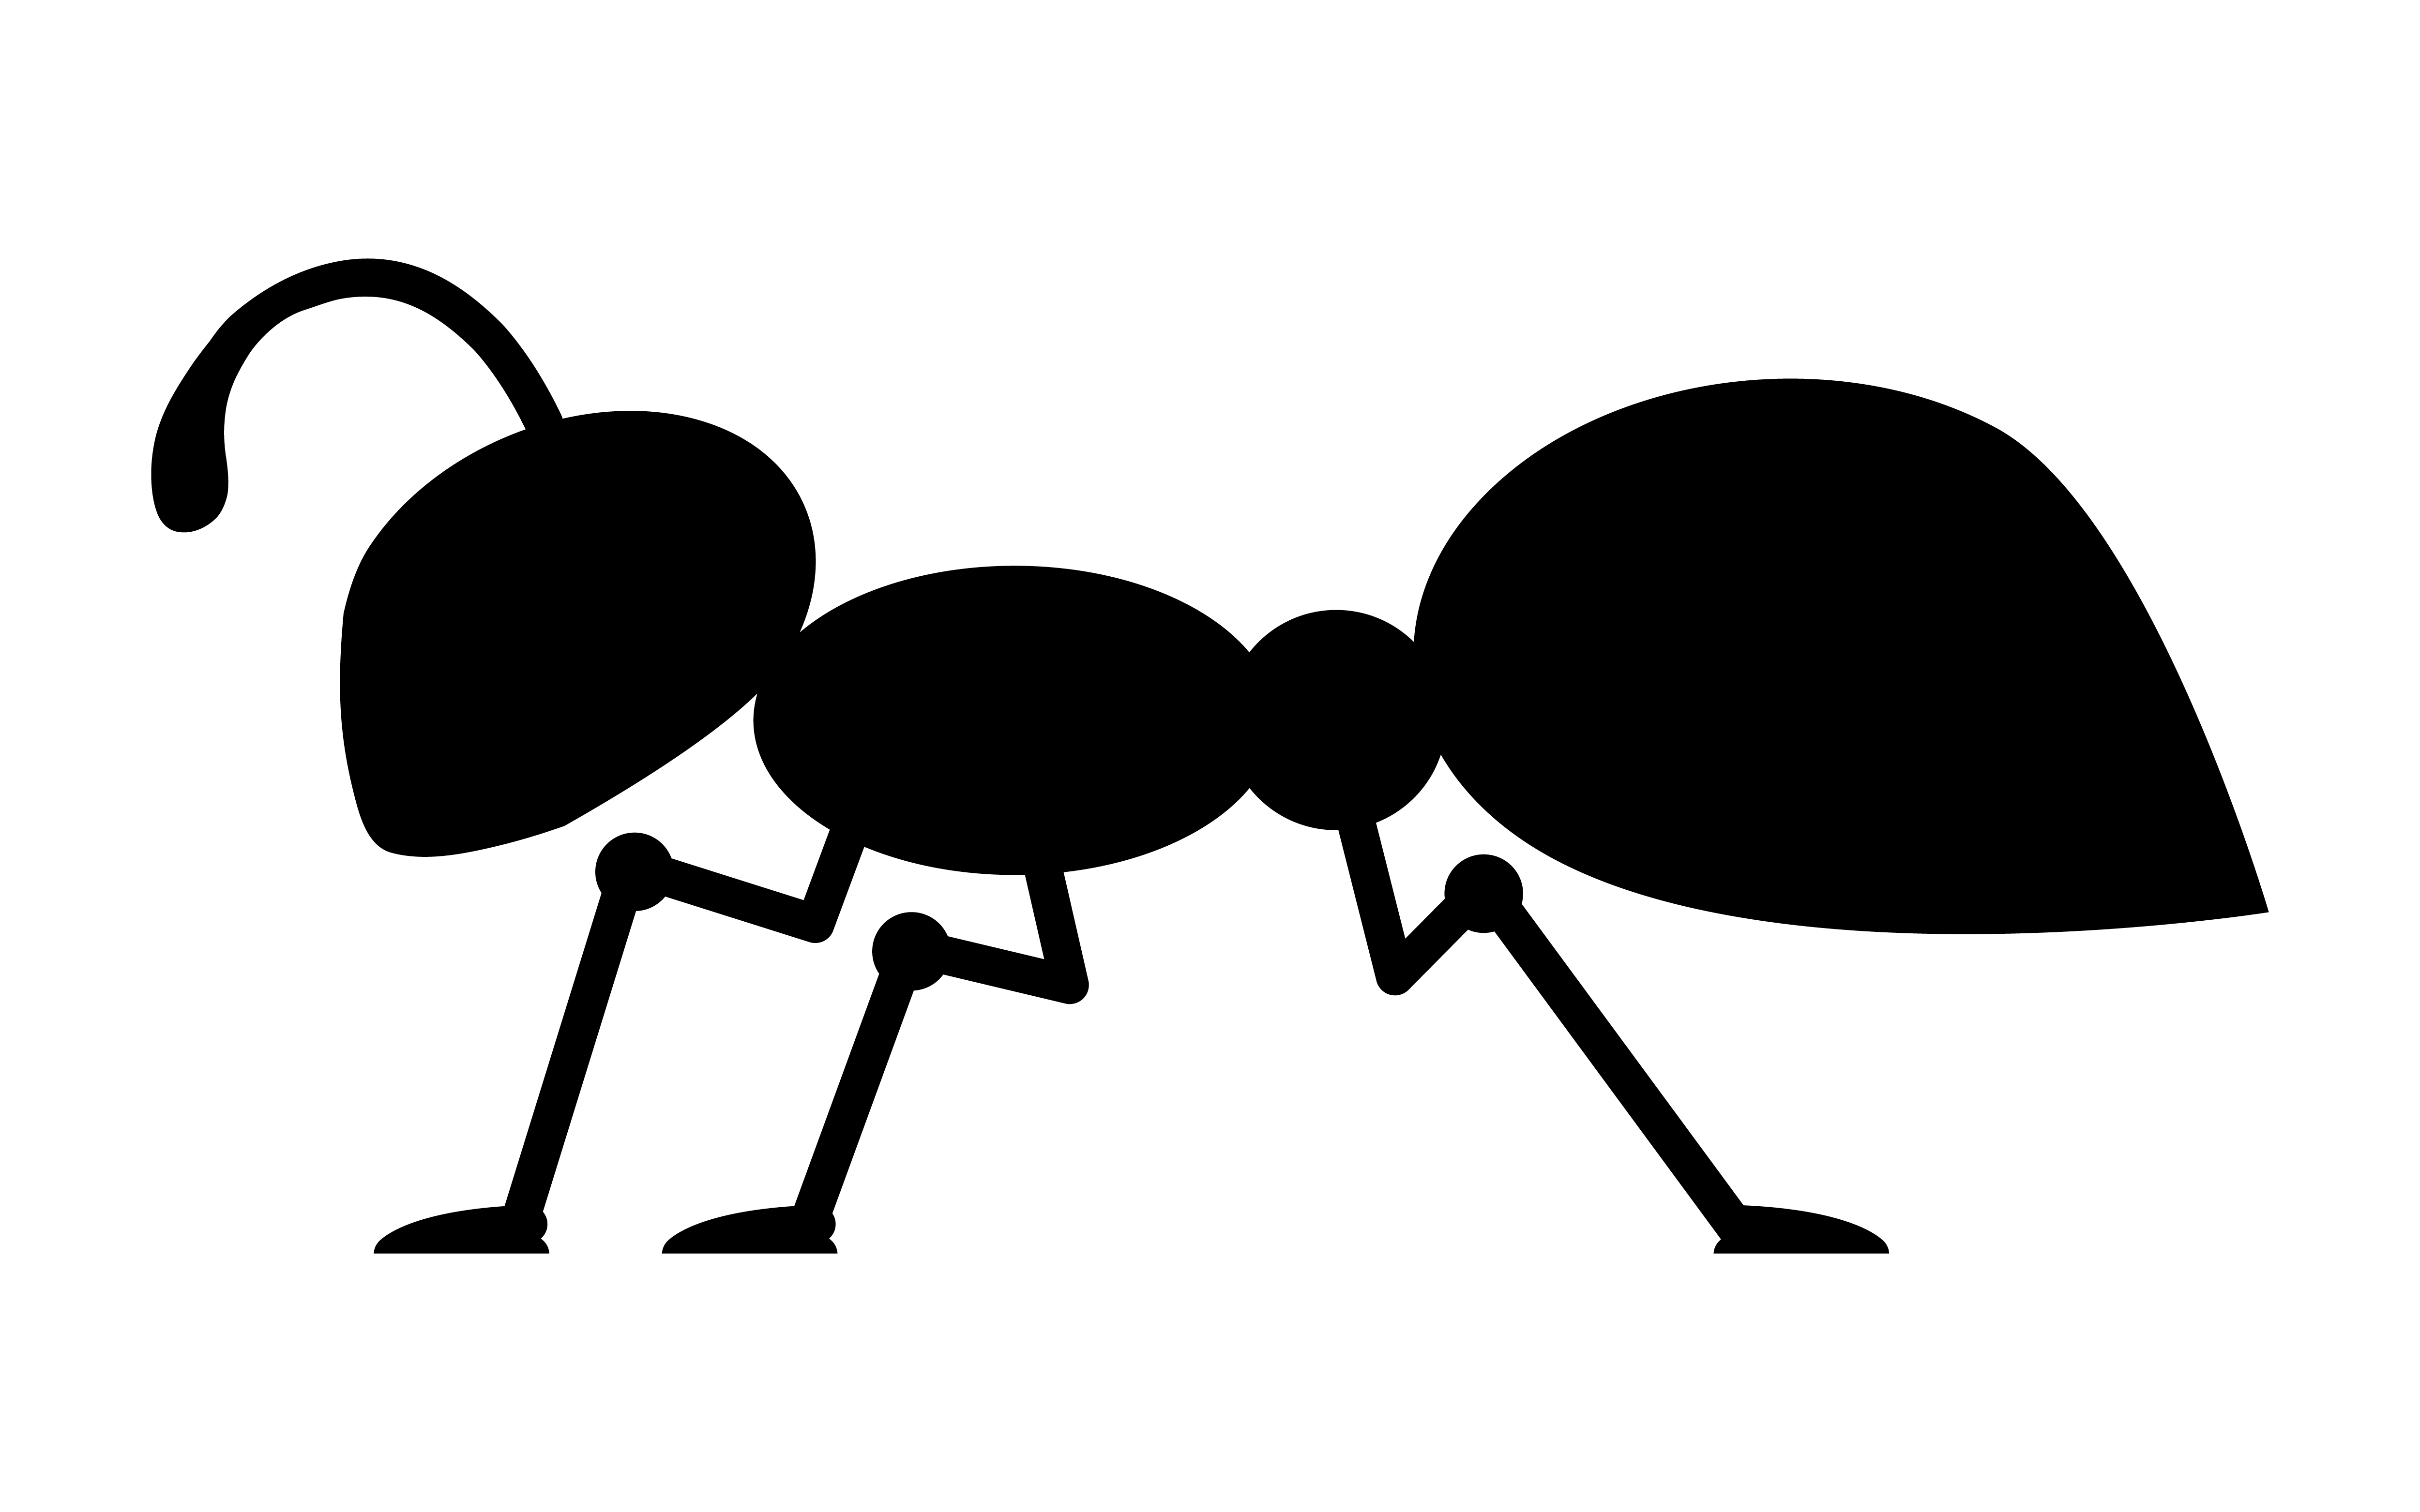 Cartoon Ant Insect Bug - Download Free Vectors, Clipart ...